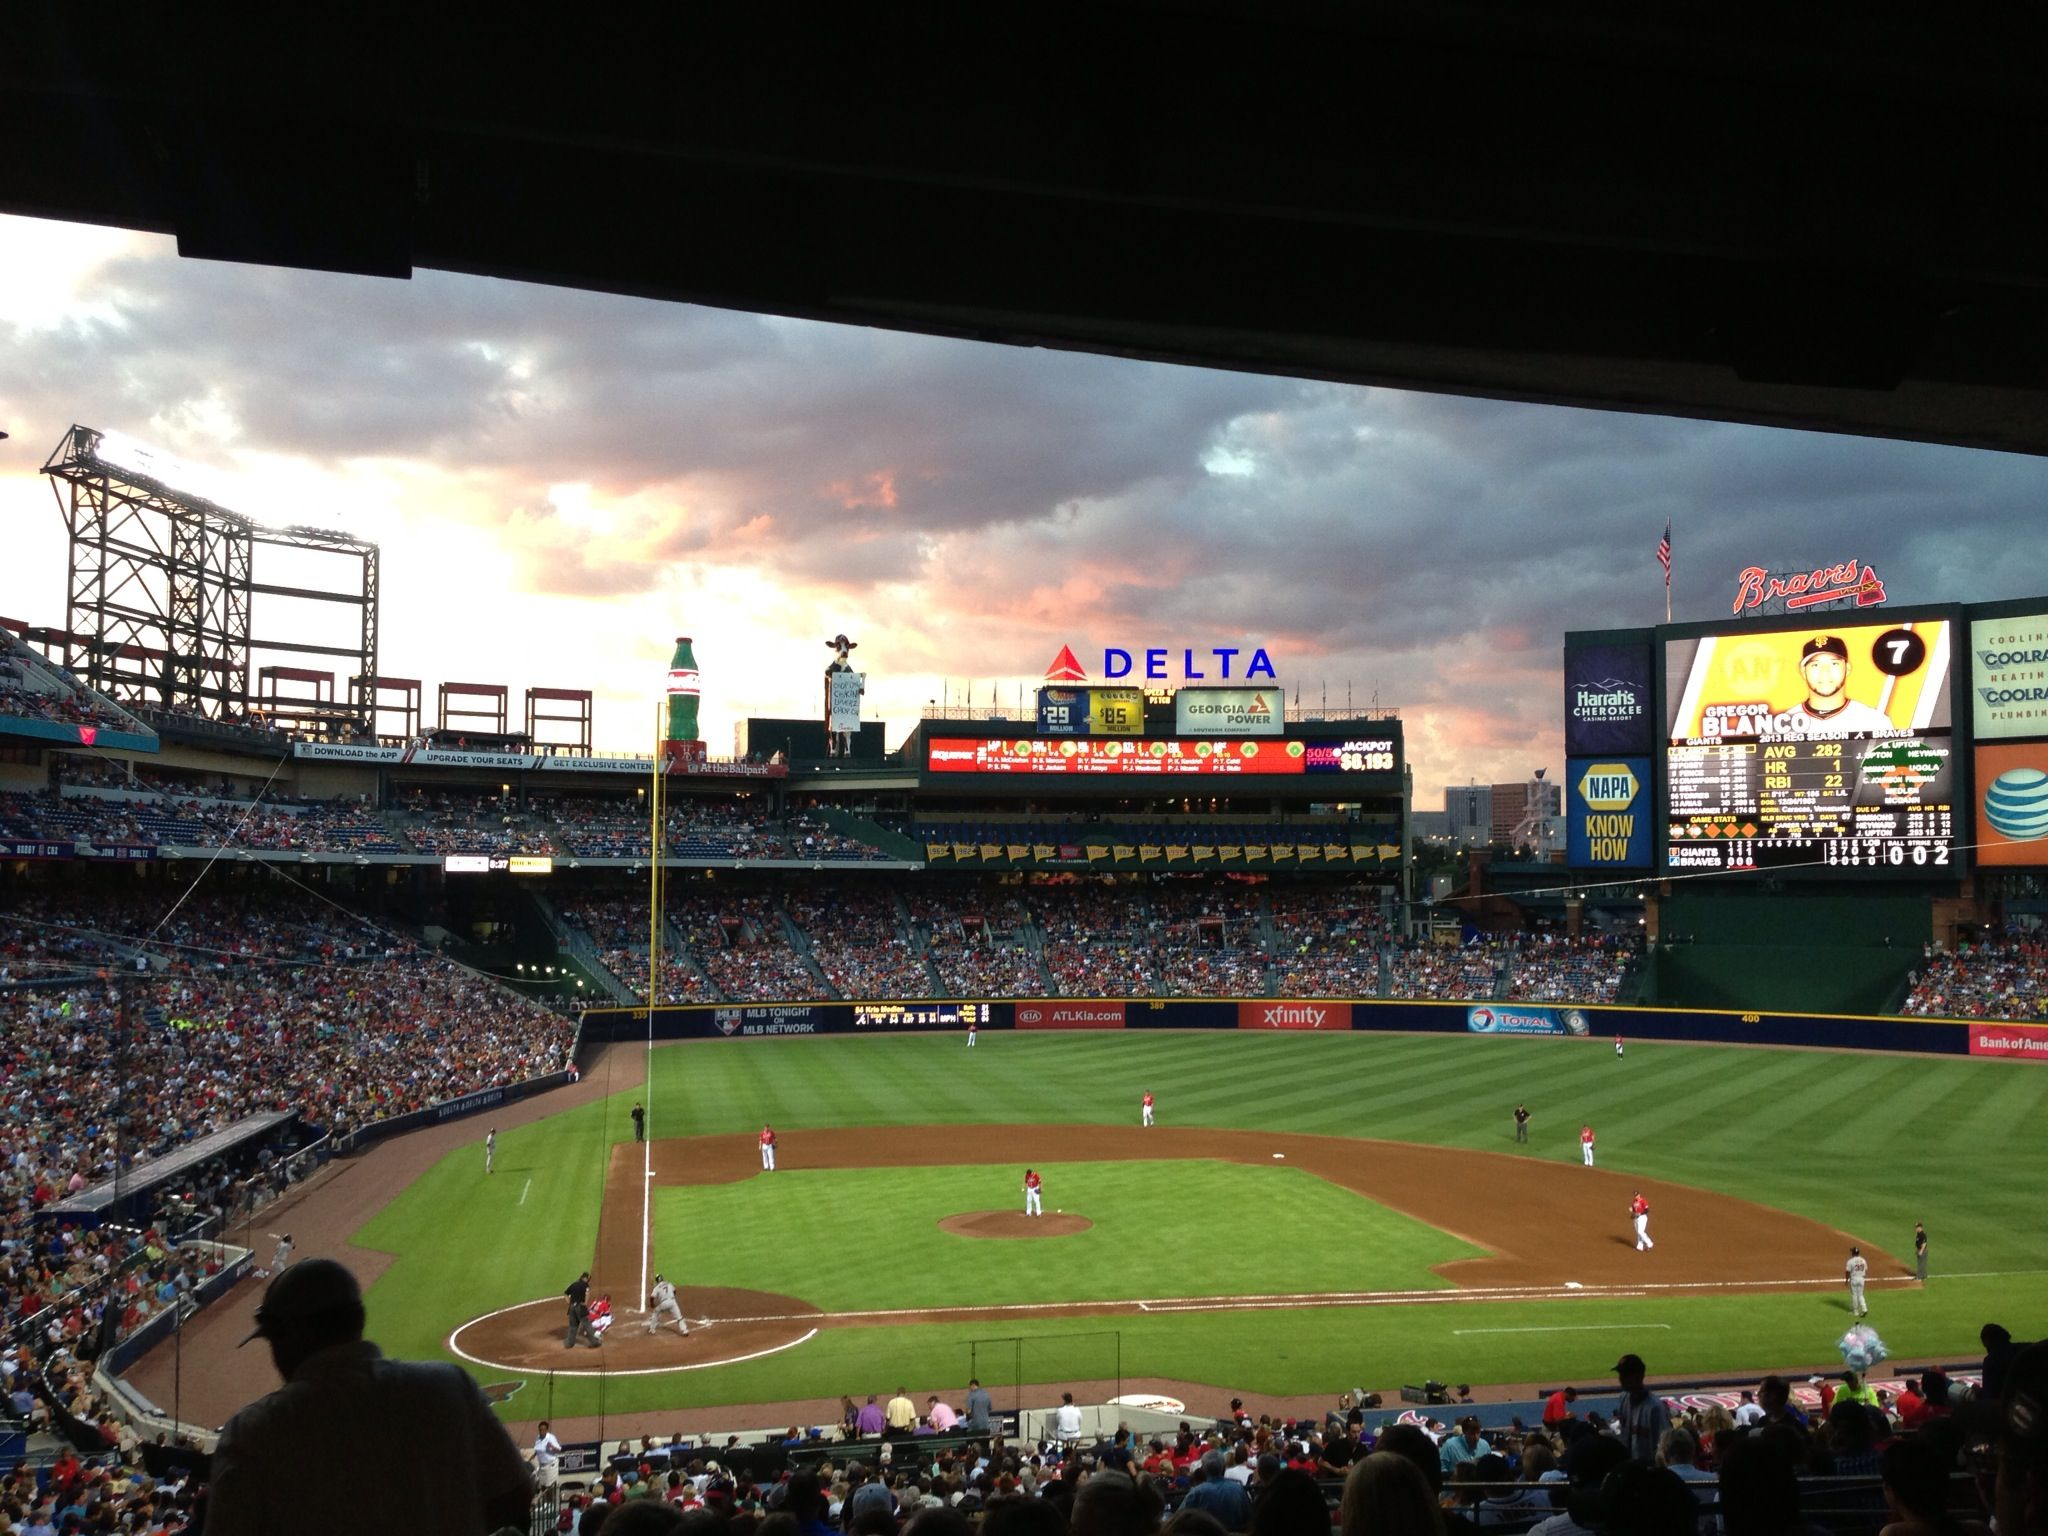 Pin By Lamar Gray On Travels Atlanta Braves Braves Game Atlanta Braves Game